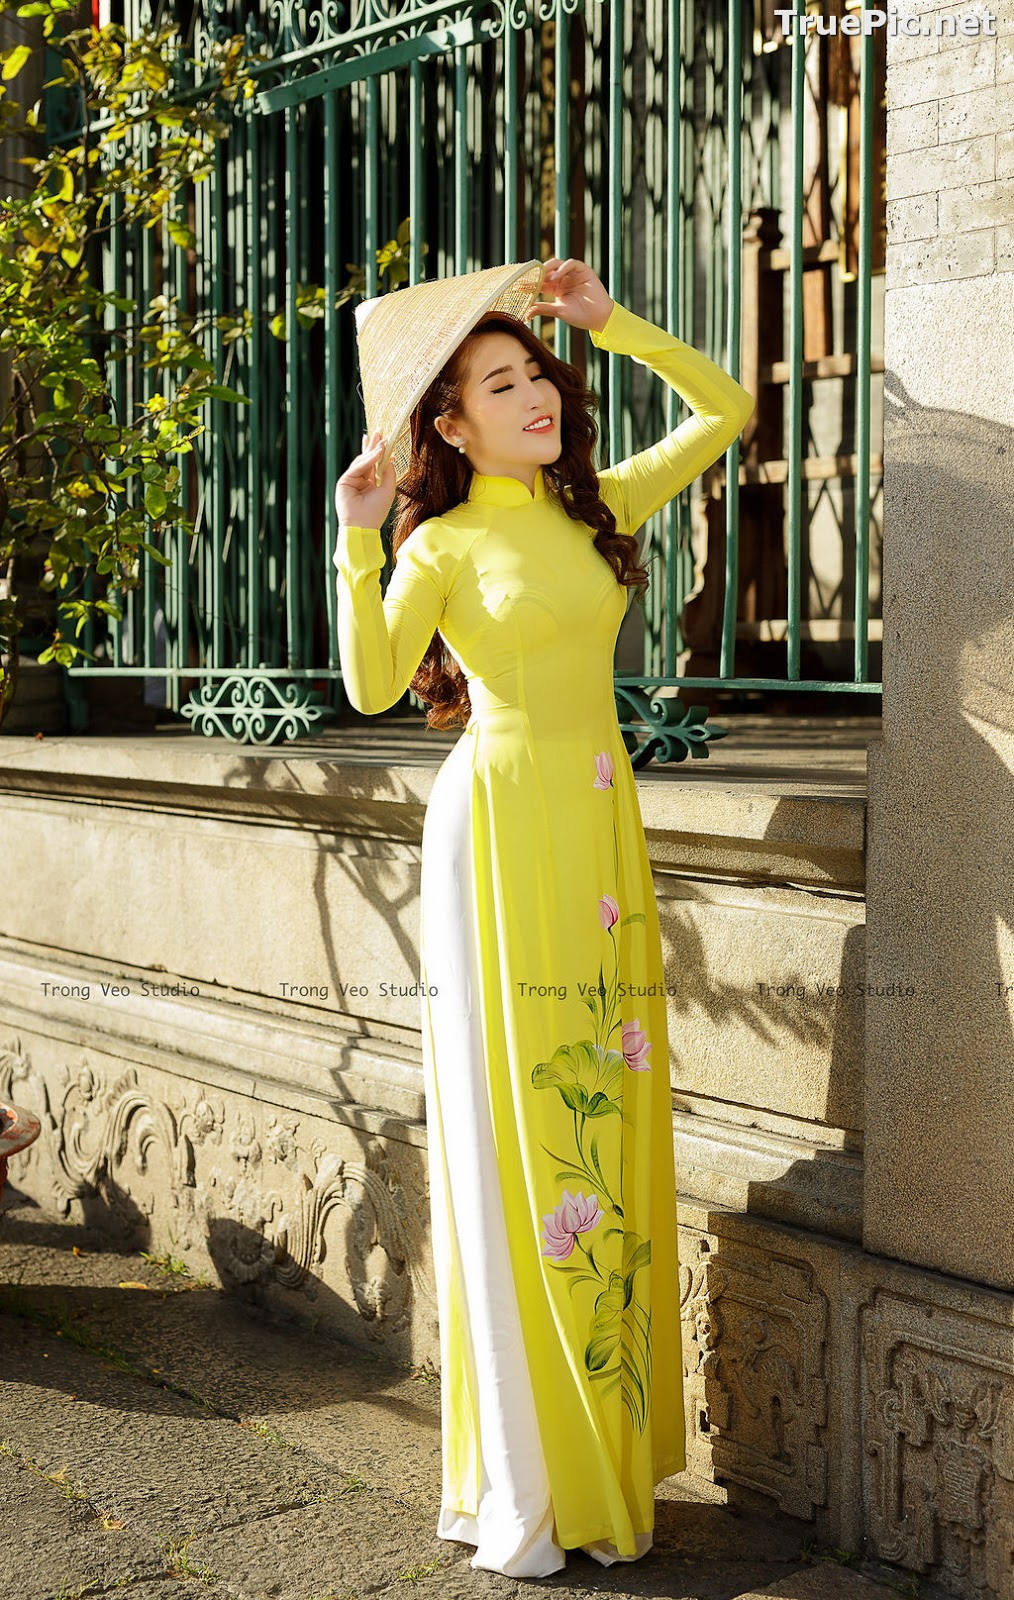 Image The Beauty of Vietnamese Girls with Traditional Dress (Ao Dai) #4 - TruePic.net - Picture-6